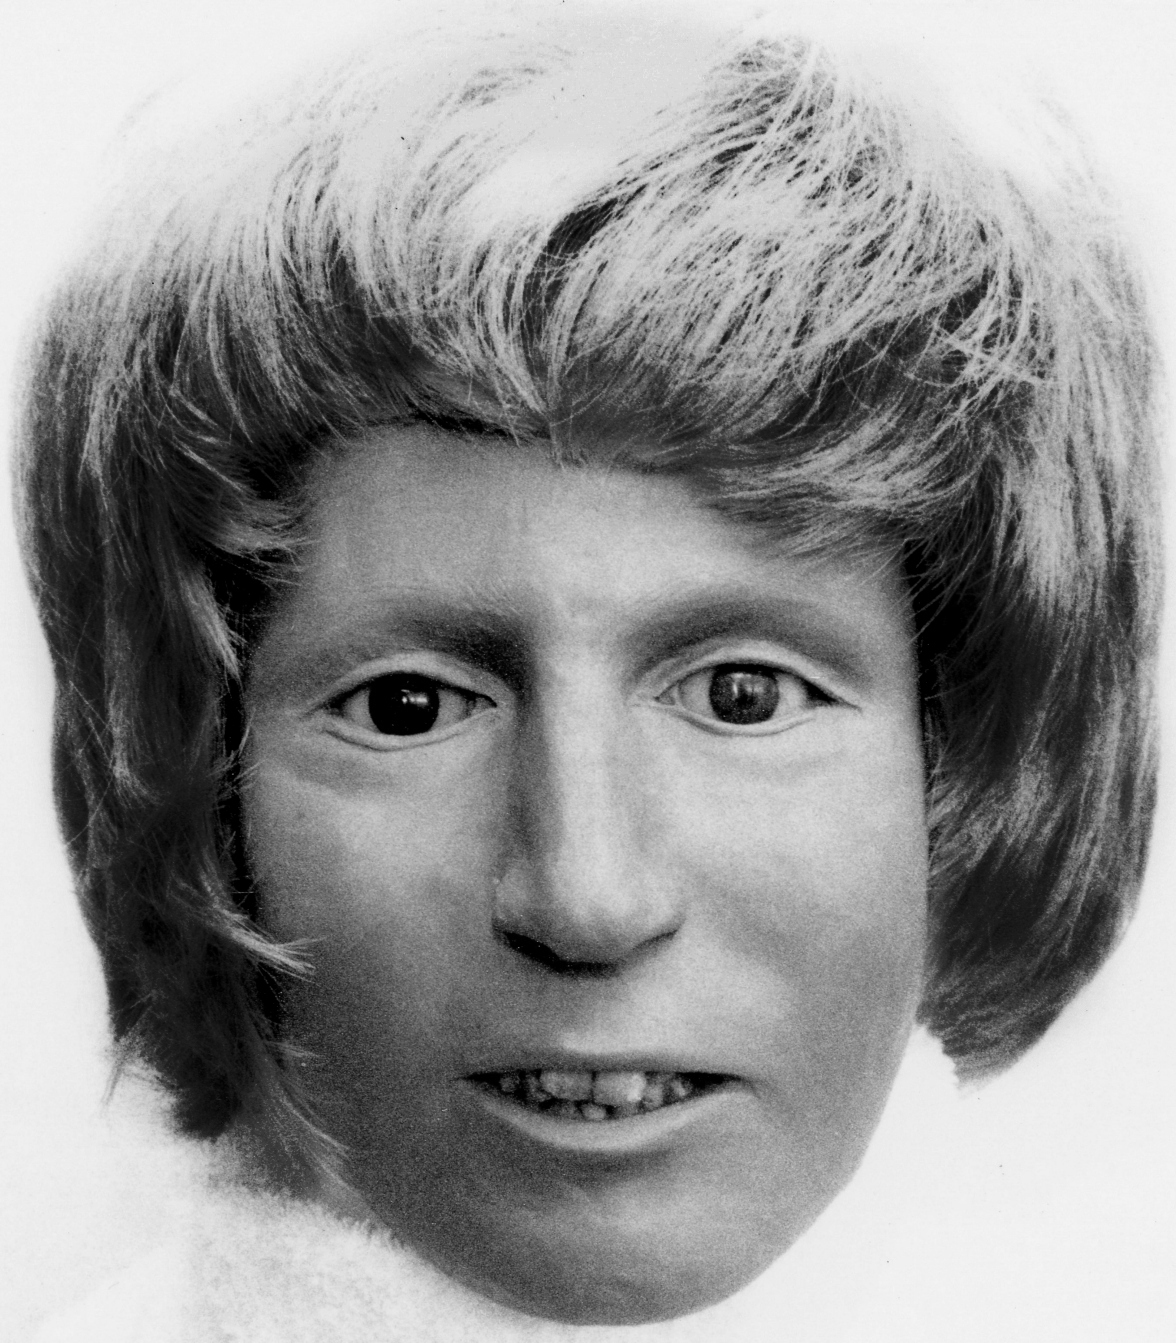 Cleveland County Jane Doe (1974)